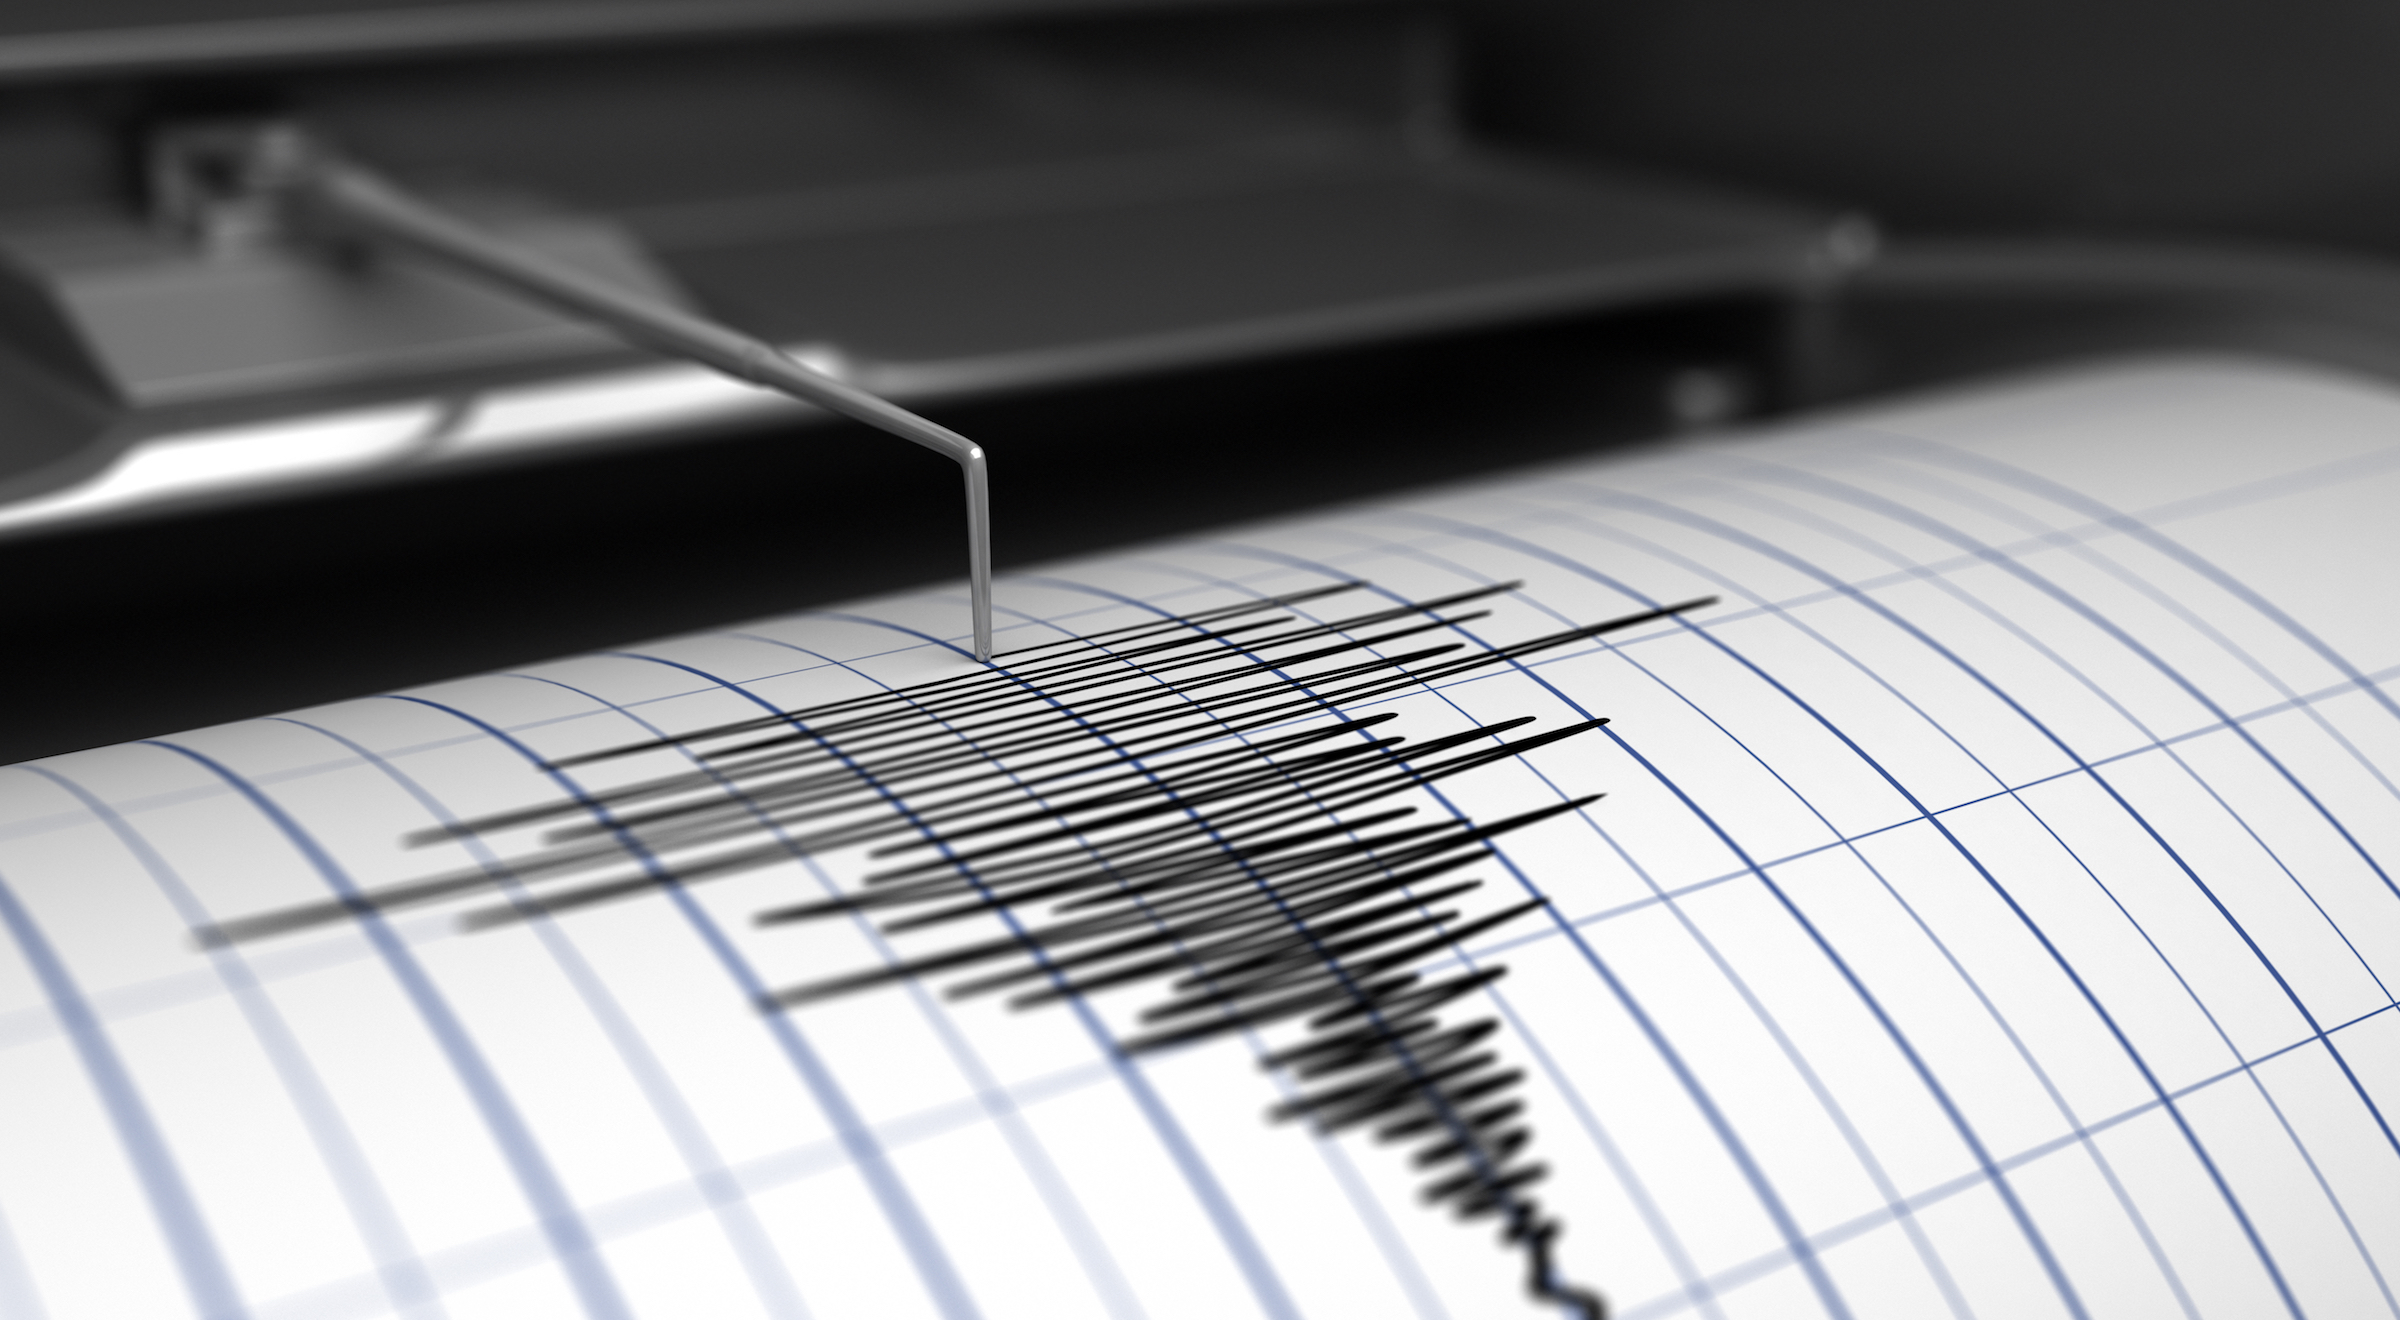 A dozen earthquakes were recorded over the weekend in Oklahoma, the U.S. Geological Survey said. No injuries or damage have been reported.